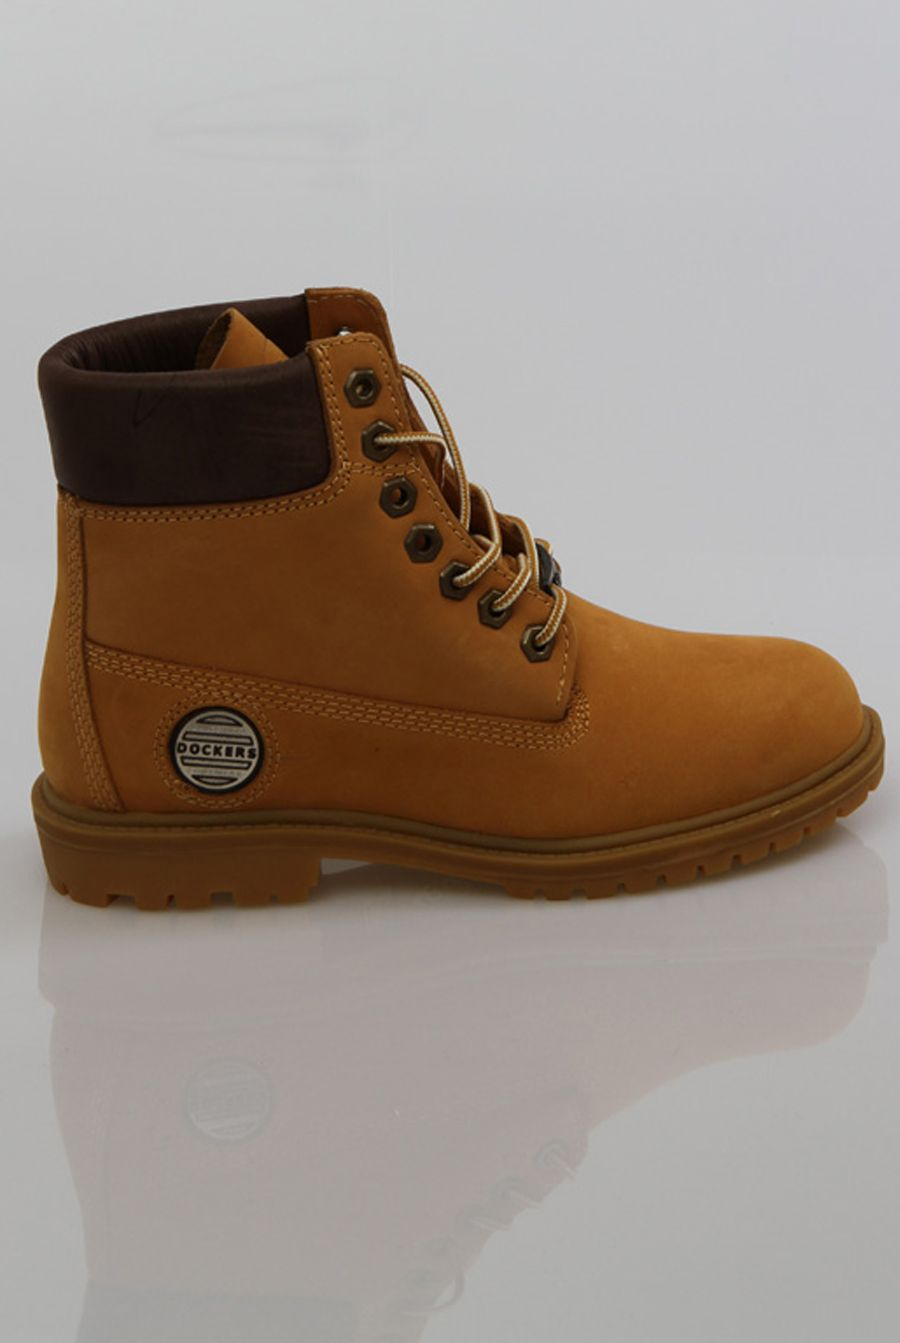 Dockers | Boots, Timberland boots, High top sneakers